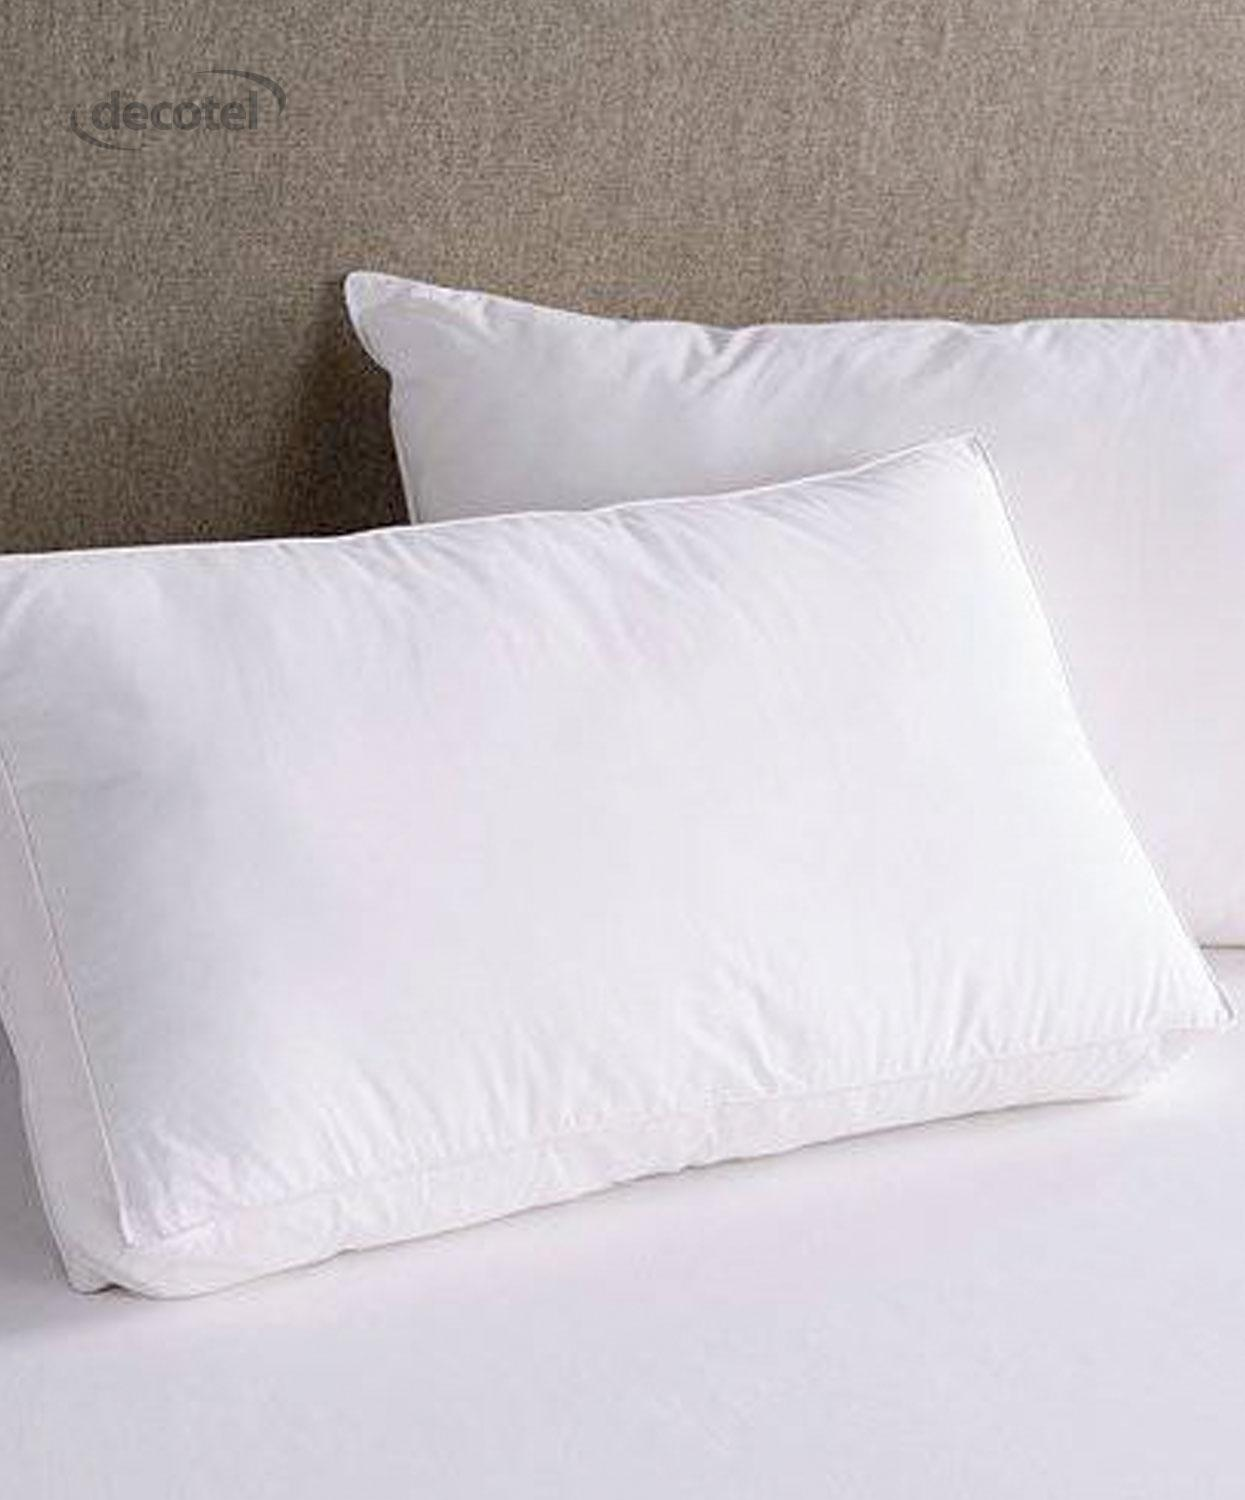 Pillows by Star Linen